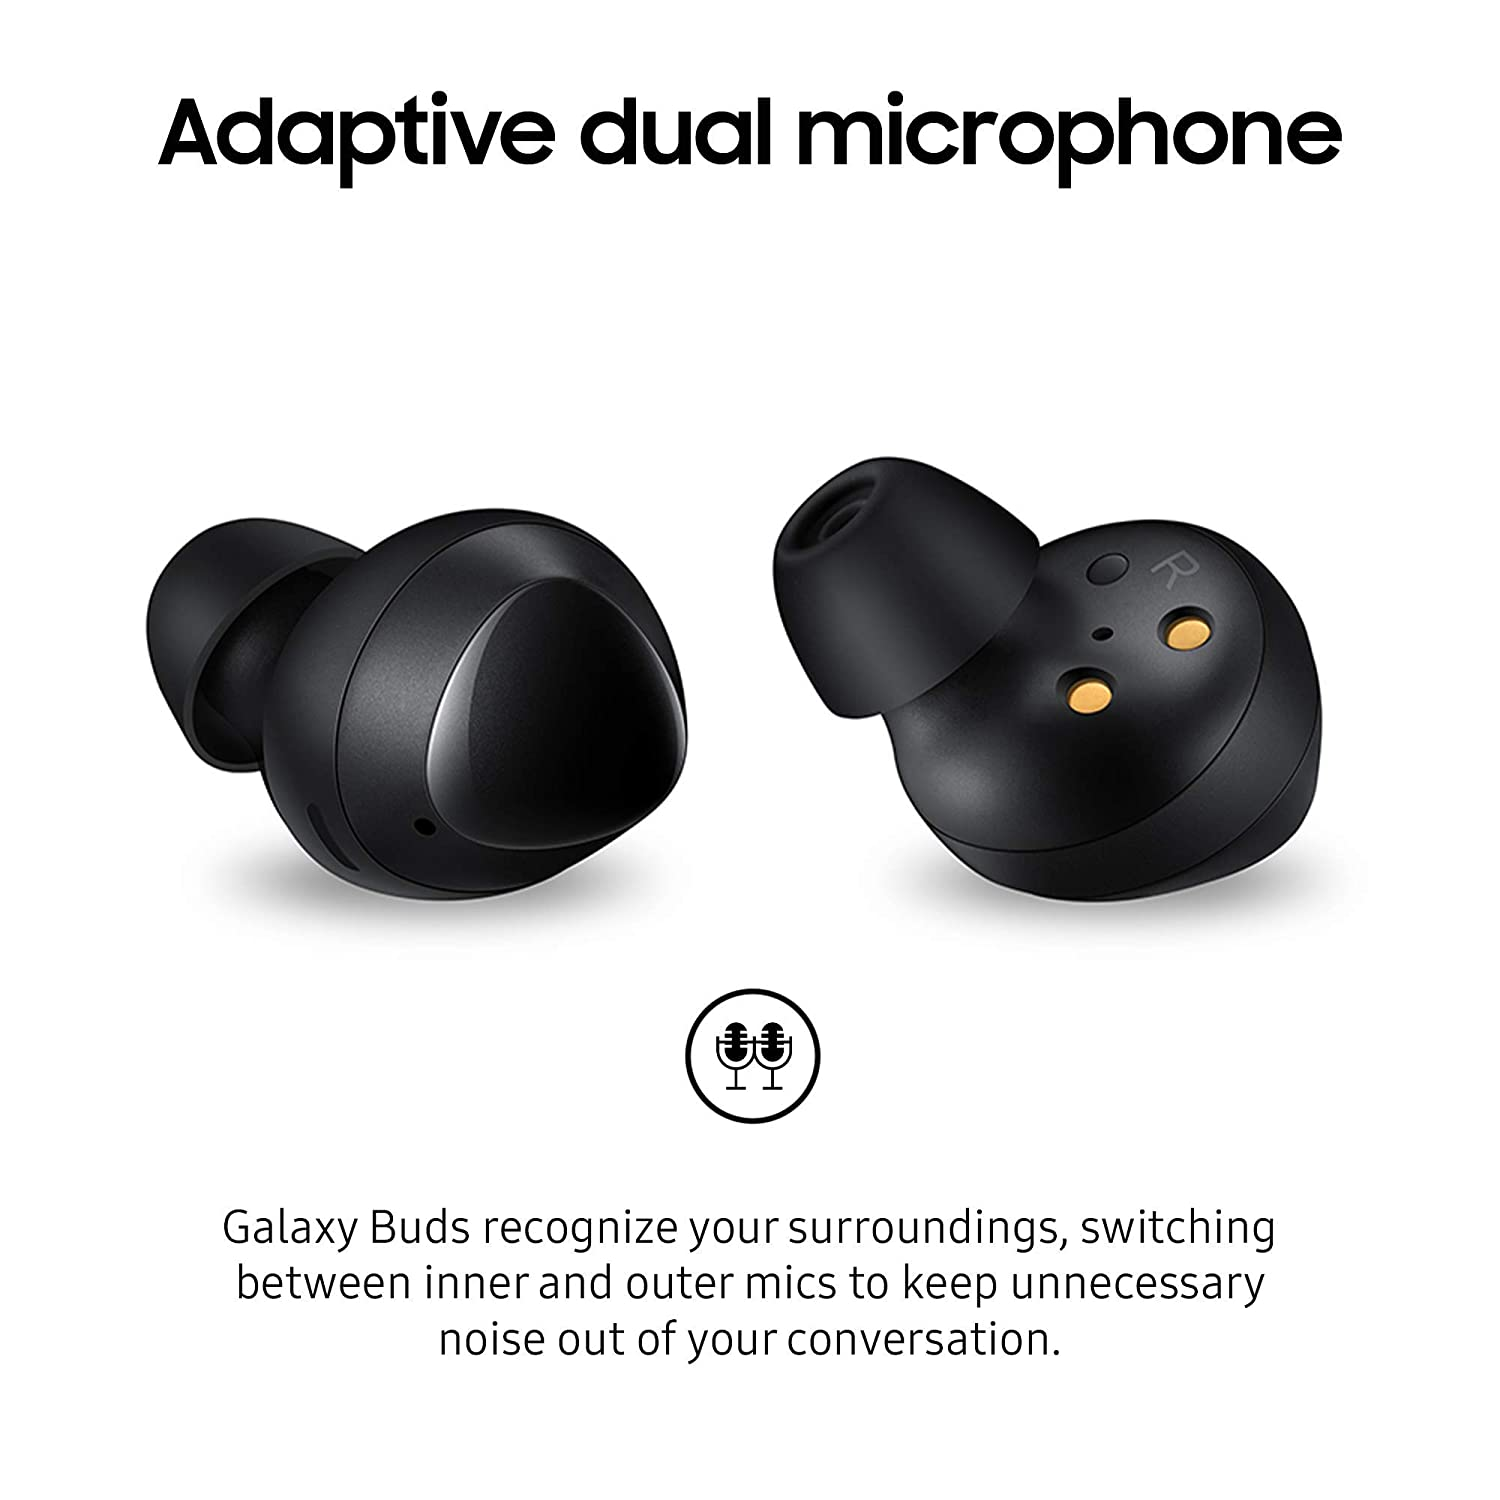 Samsung Galaxy Buds  Bluetooth True Wireless Earbuds Wireless charging Case included Black  US